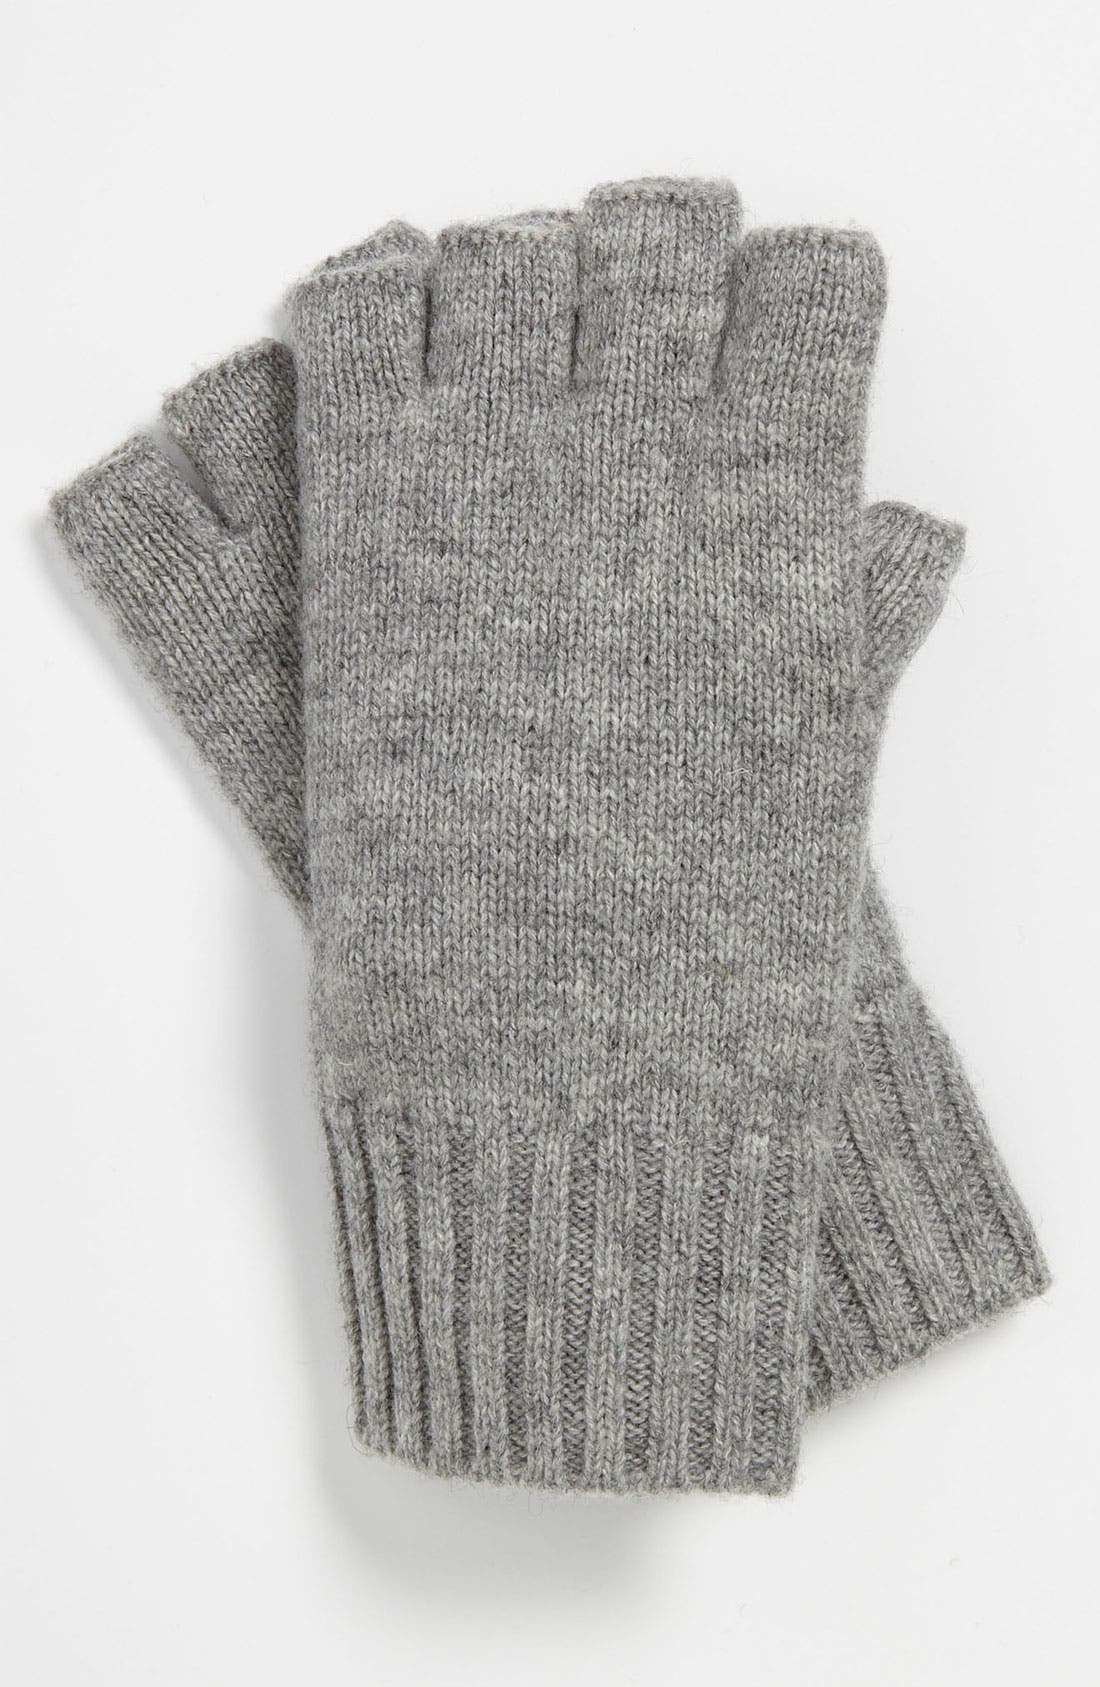 Main Image - Michael Kors Fingerless Gloves